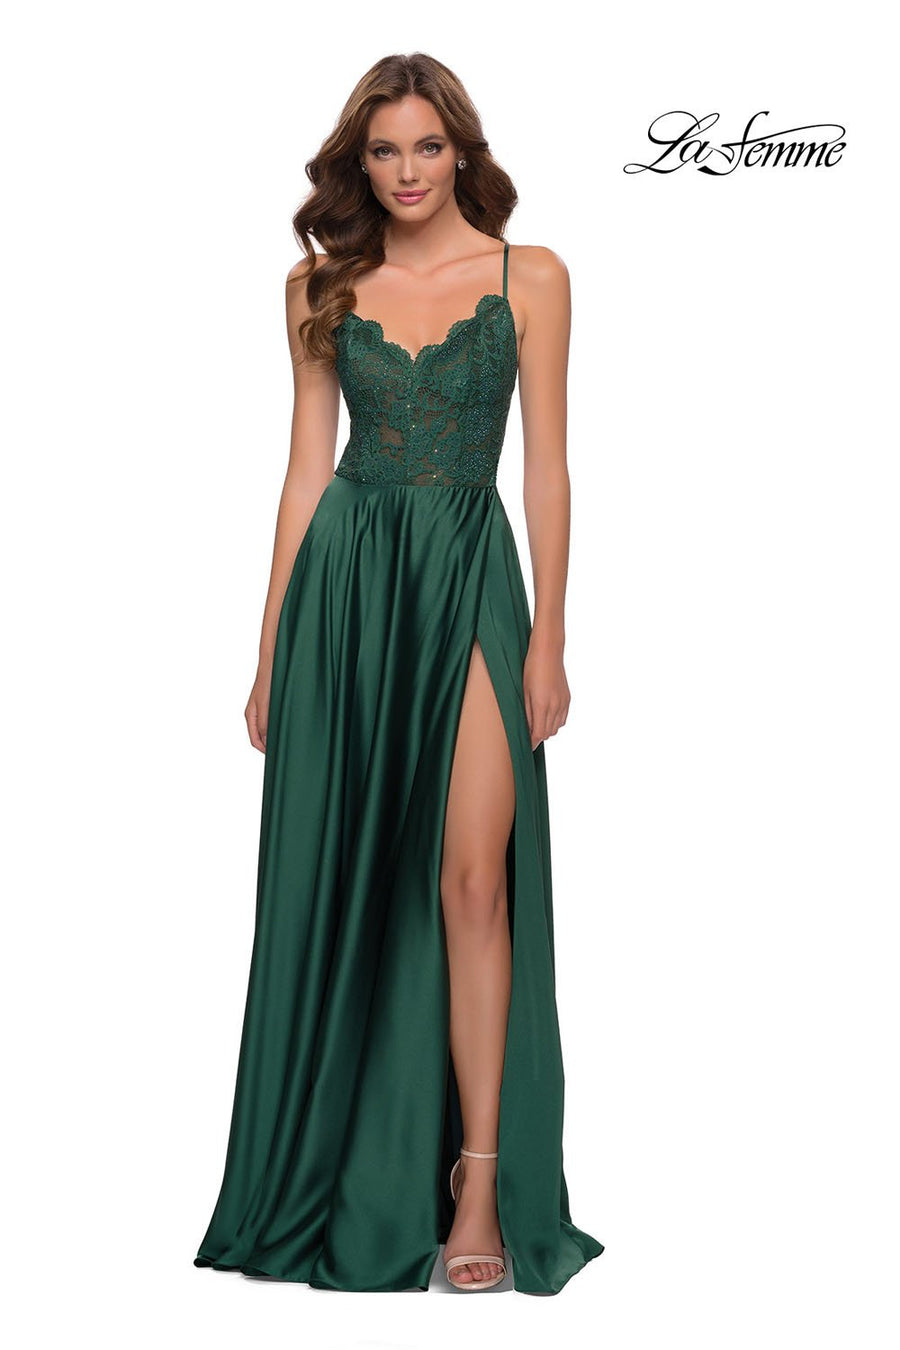 La Femme 29760 prom dress images.  La Femme 29760 is available in these colors: Emerald, Navy.